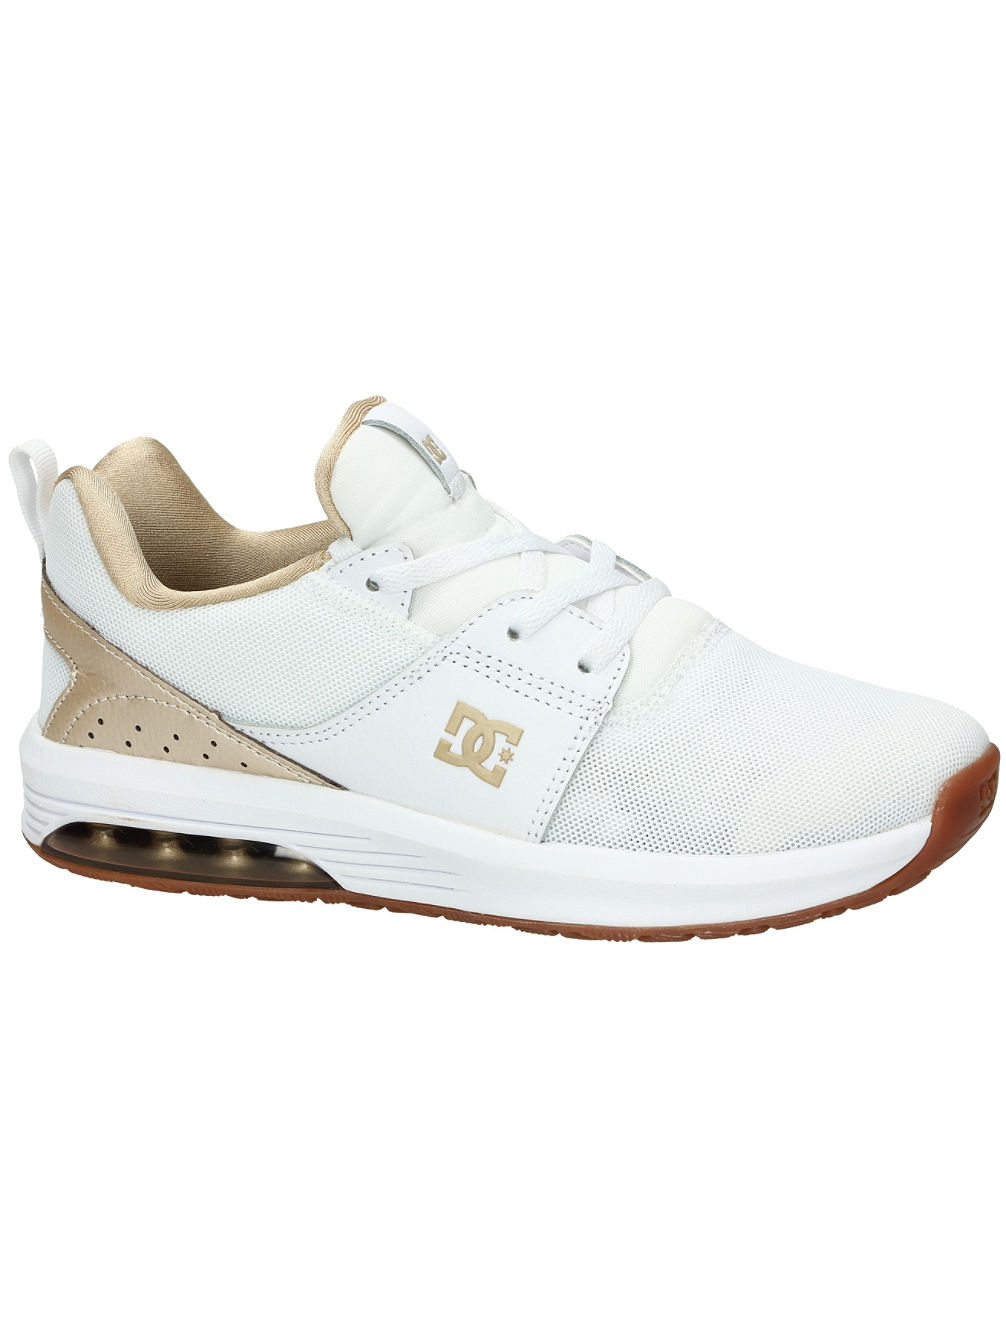 Heathrow IA Sneakers Women